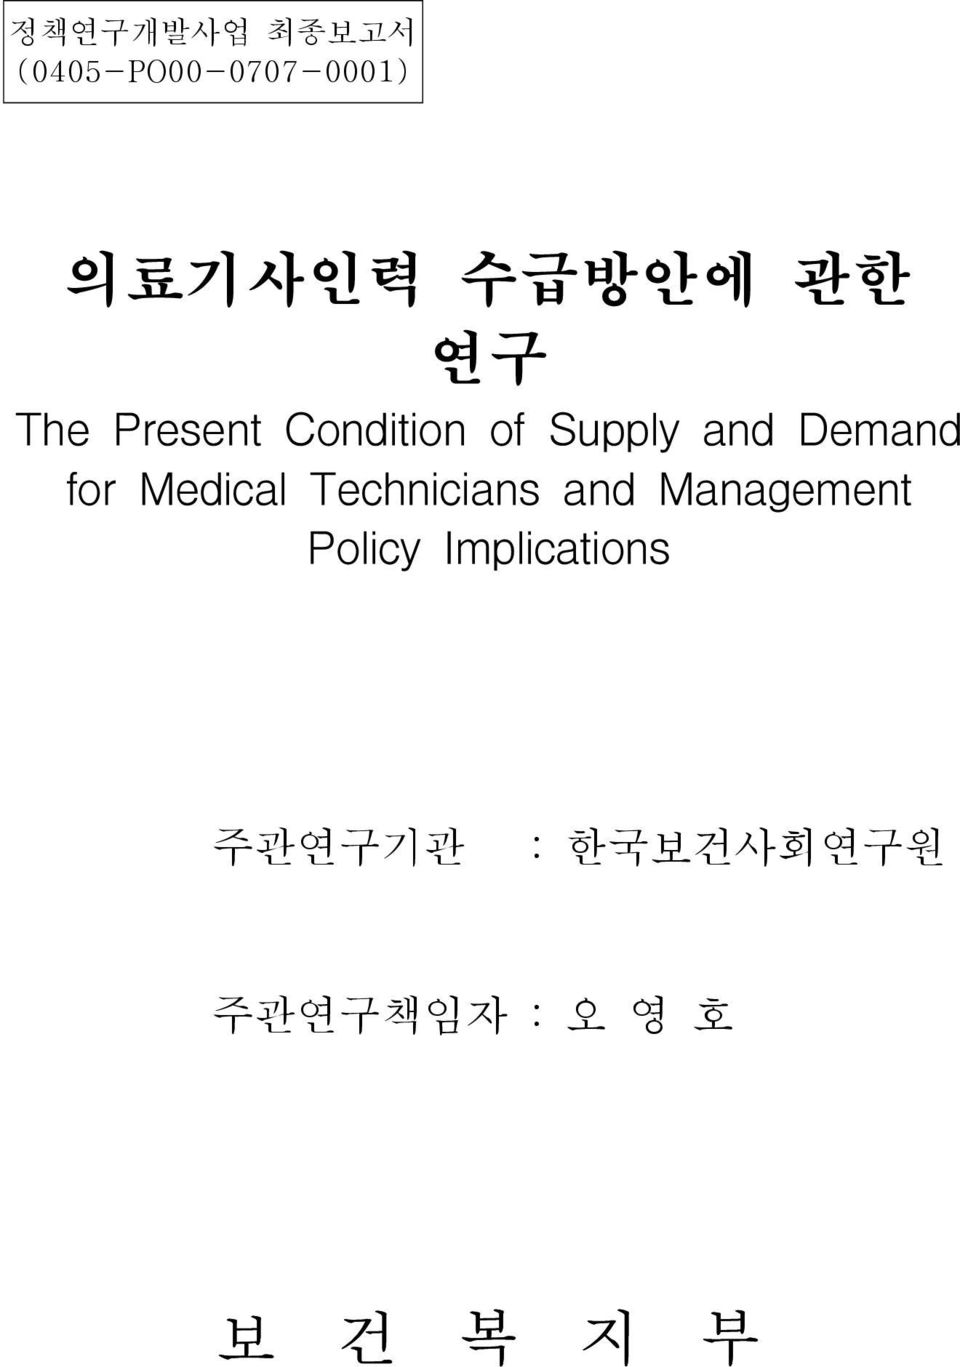 for Medical Technicians and Management Policy